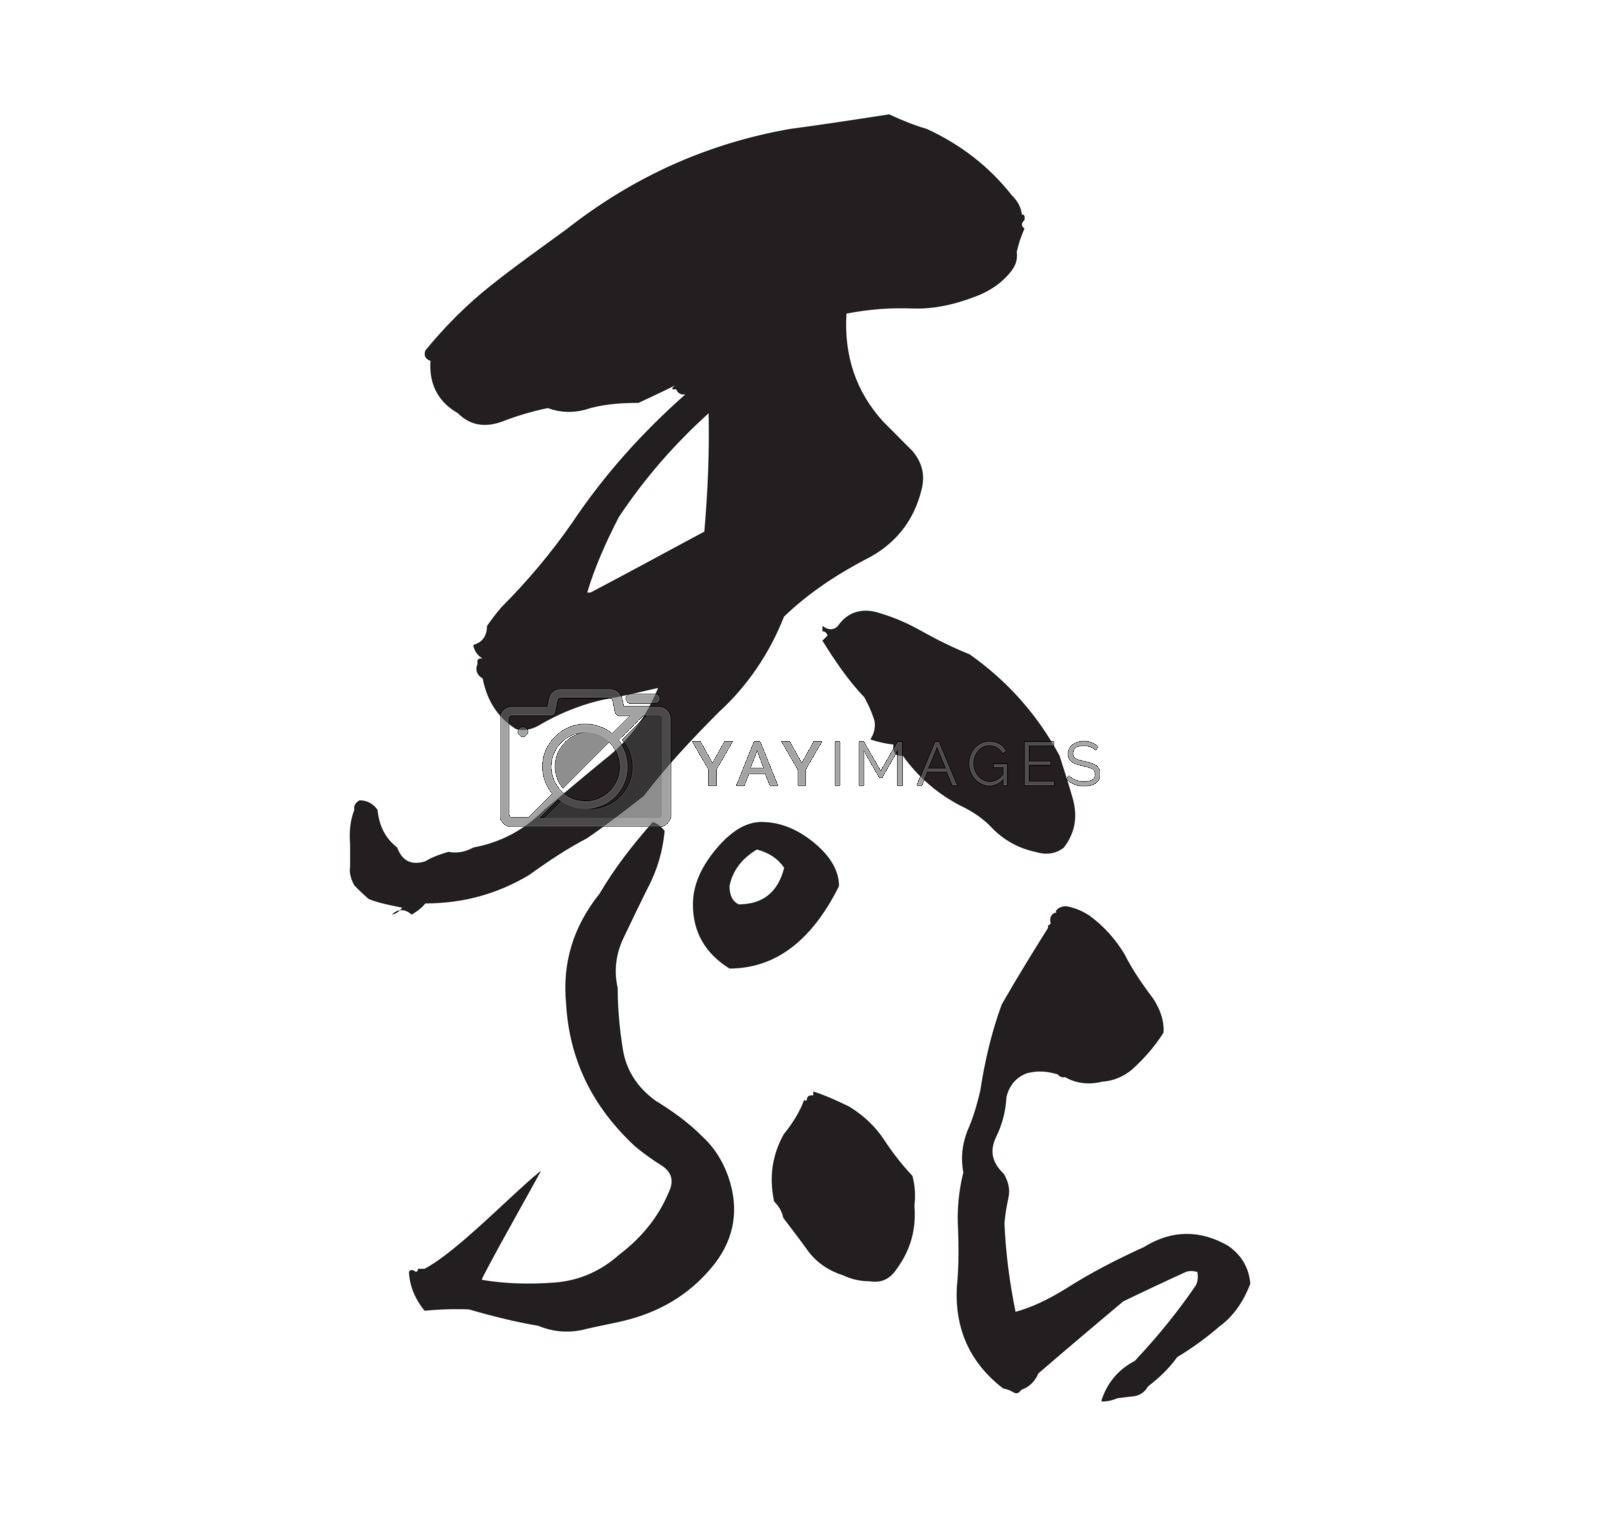 Japanese tempura restaurant traditional logo (original)